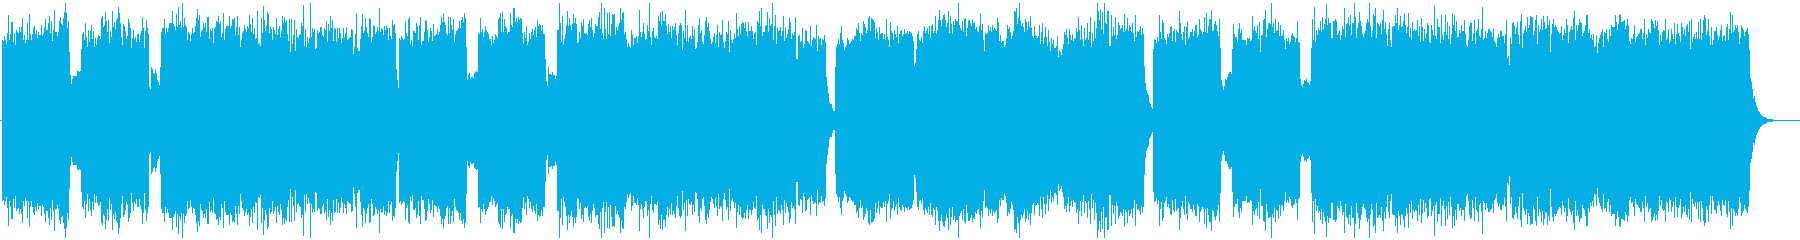 Extensive church style BGM's reproduced waveform